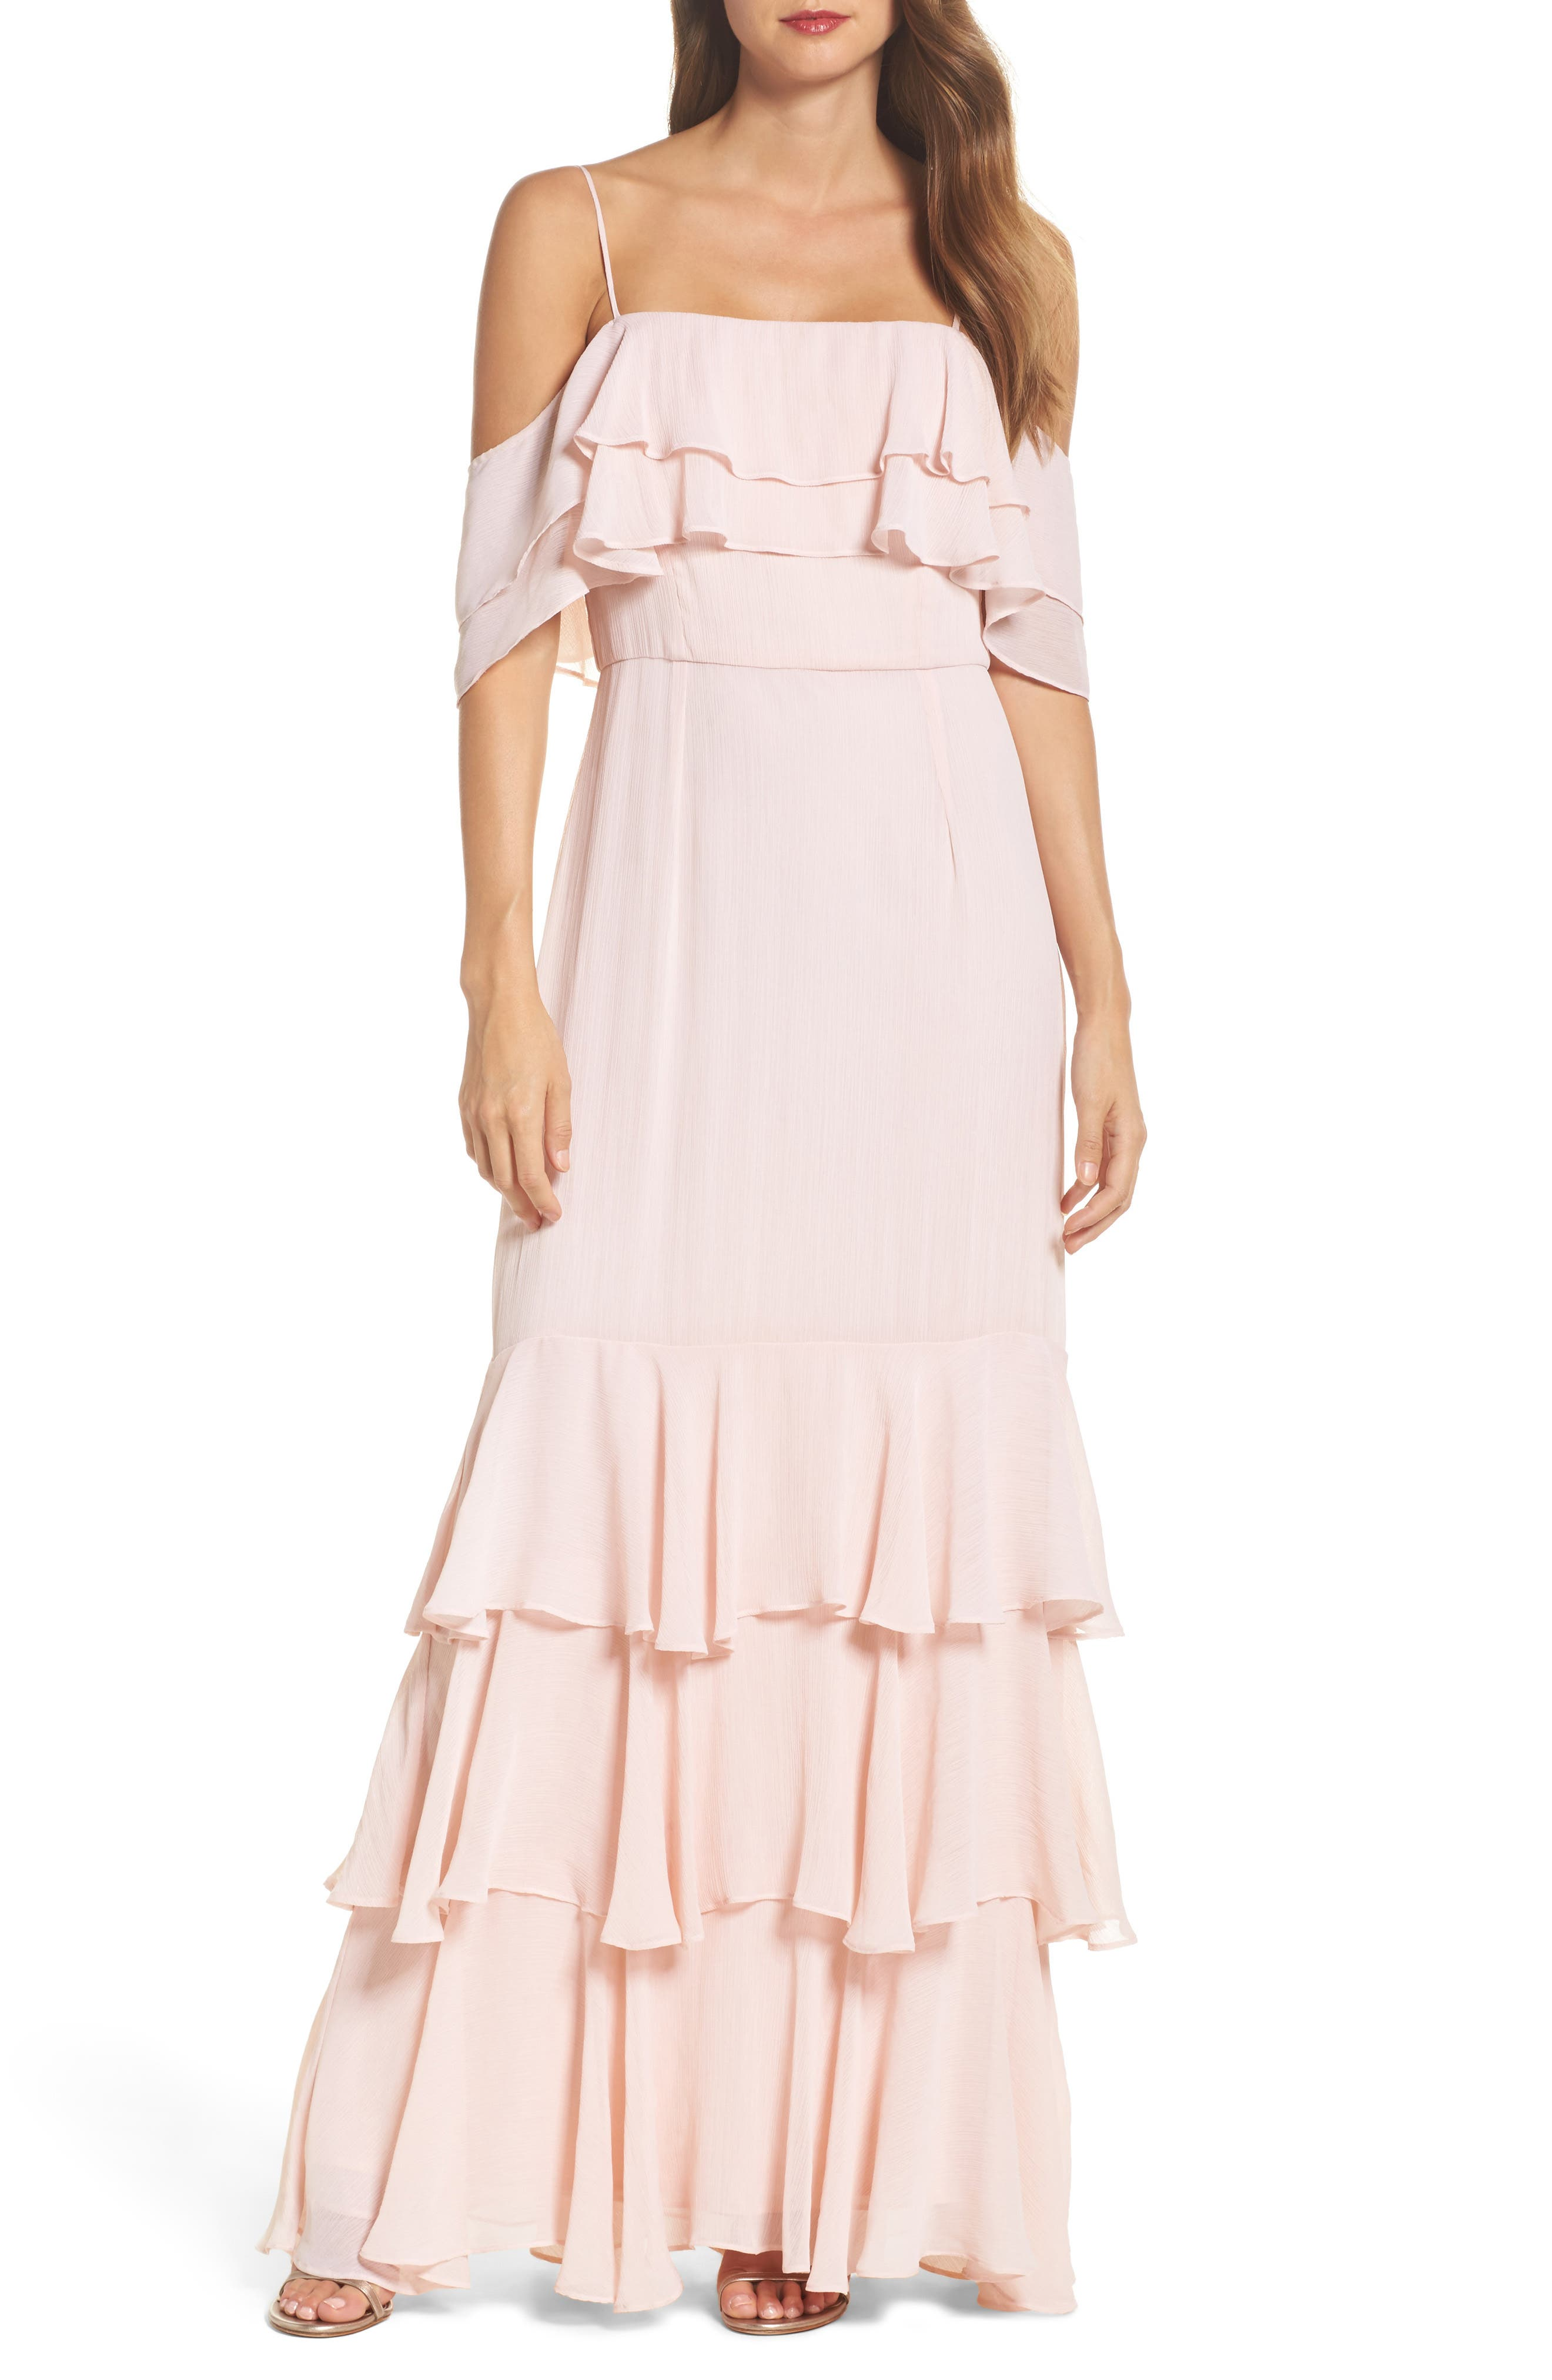 Lauren Cold Shoulder Tiered Gown,                             Main thumbnail 1, color,                             Sandalwood